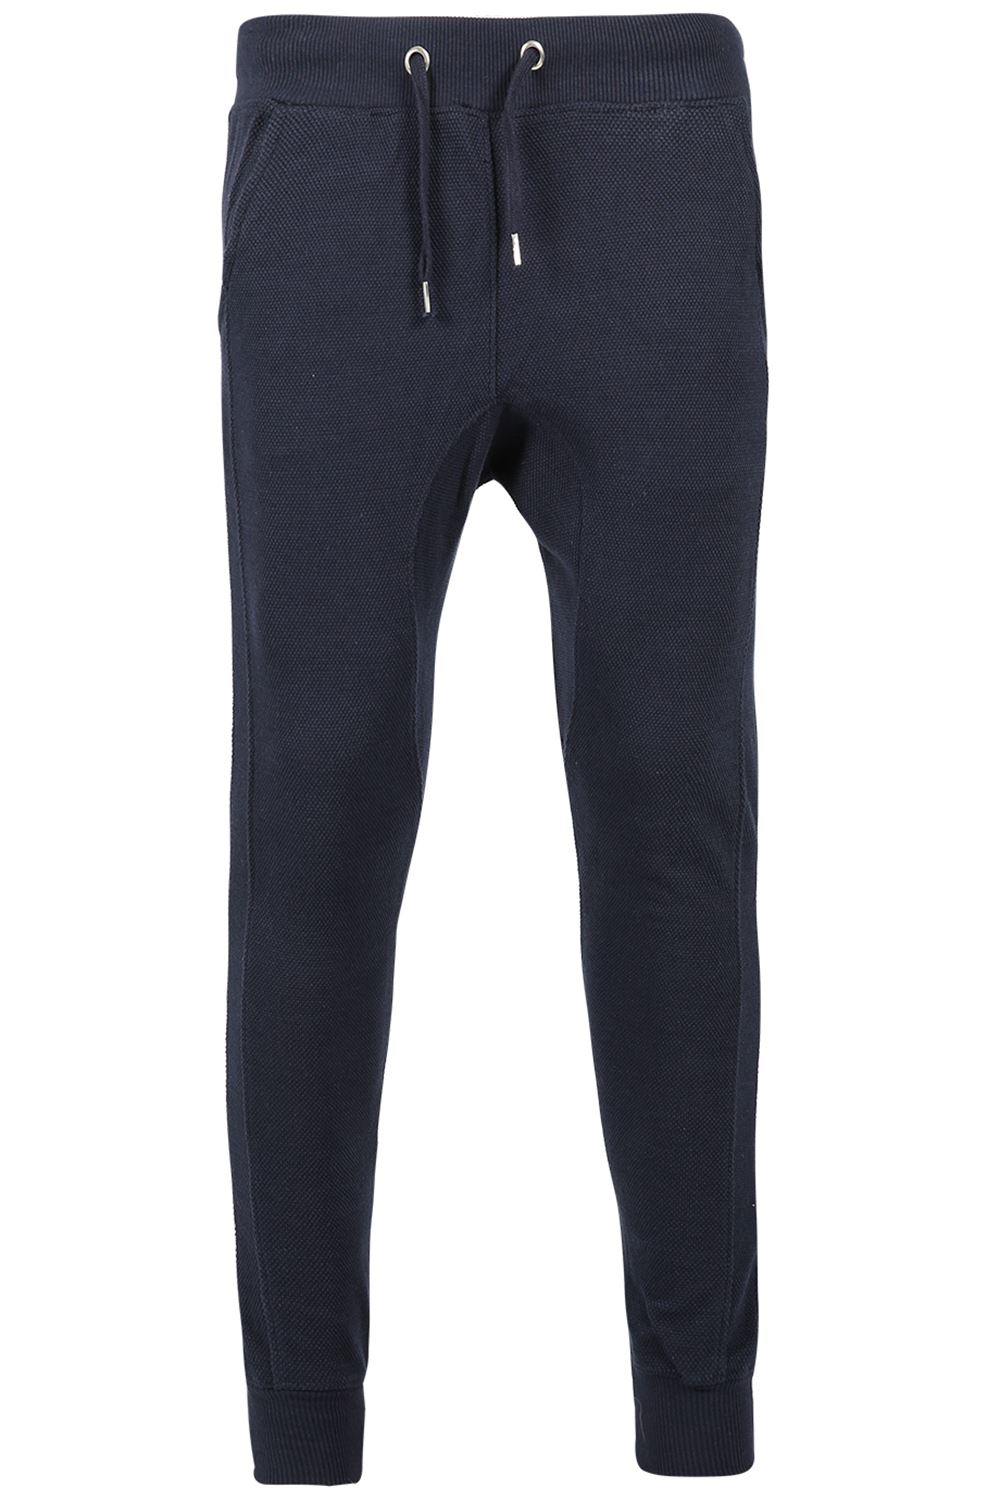 Find mens sweatpants with fly and pockets at ShopStyle. Shop the latest collection of mens sweatpants with fly and pockets from the most popular.